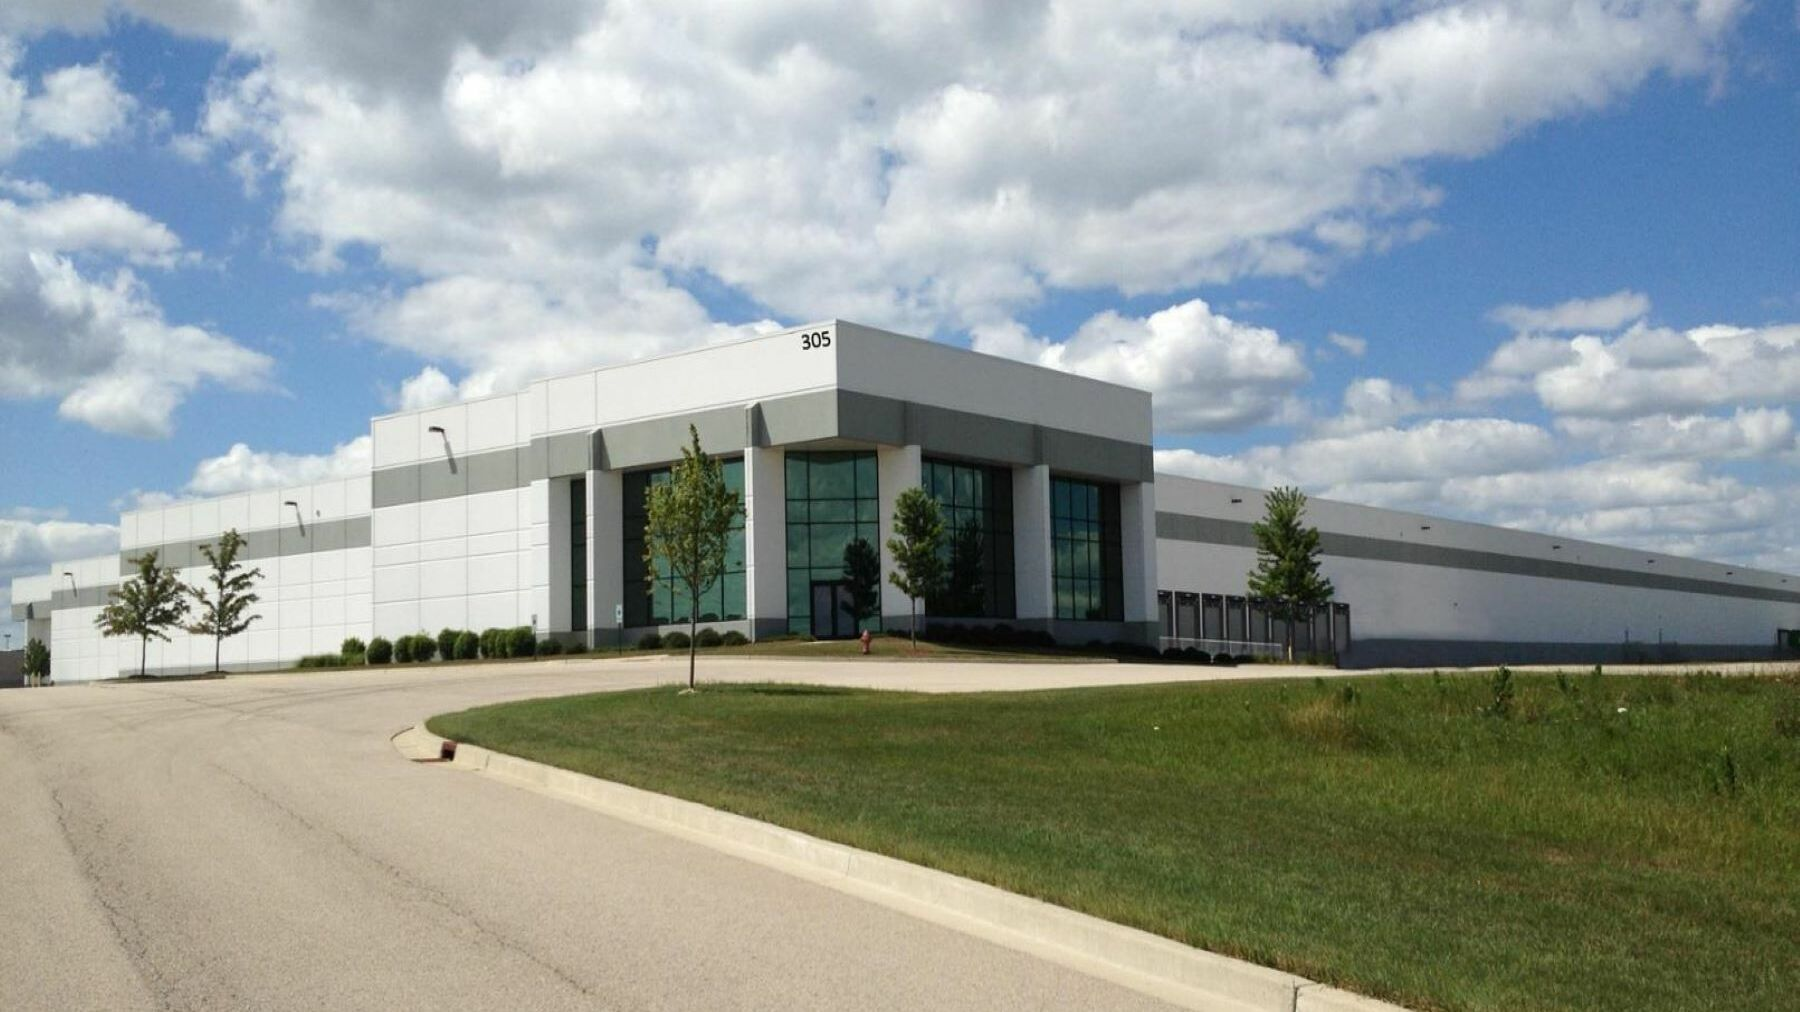 DPM-Prologis-Elgin-325-Corporate-Drive_Bldg-Image.jpg